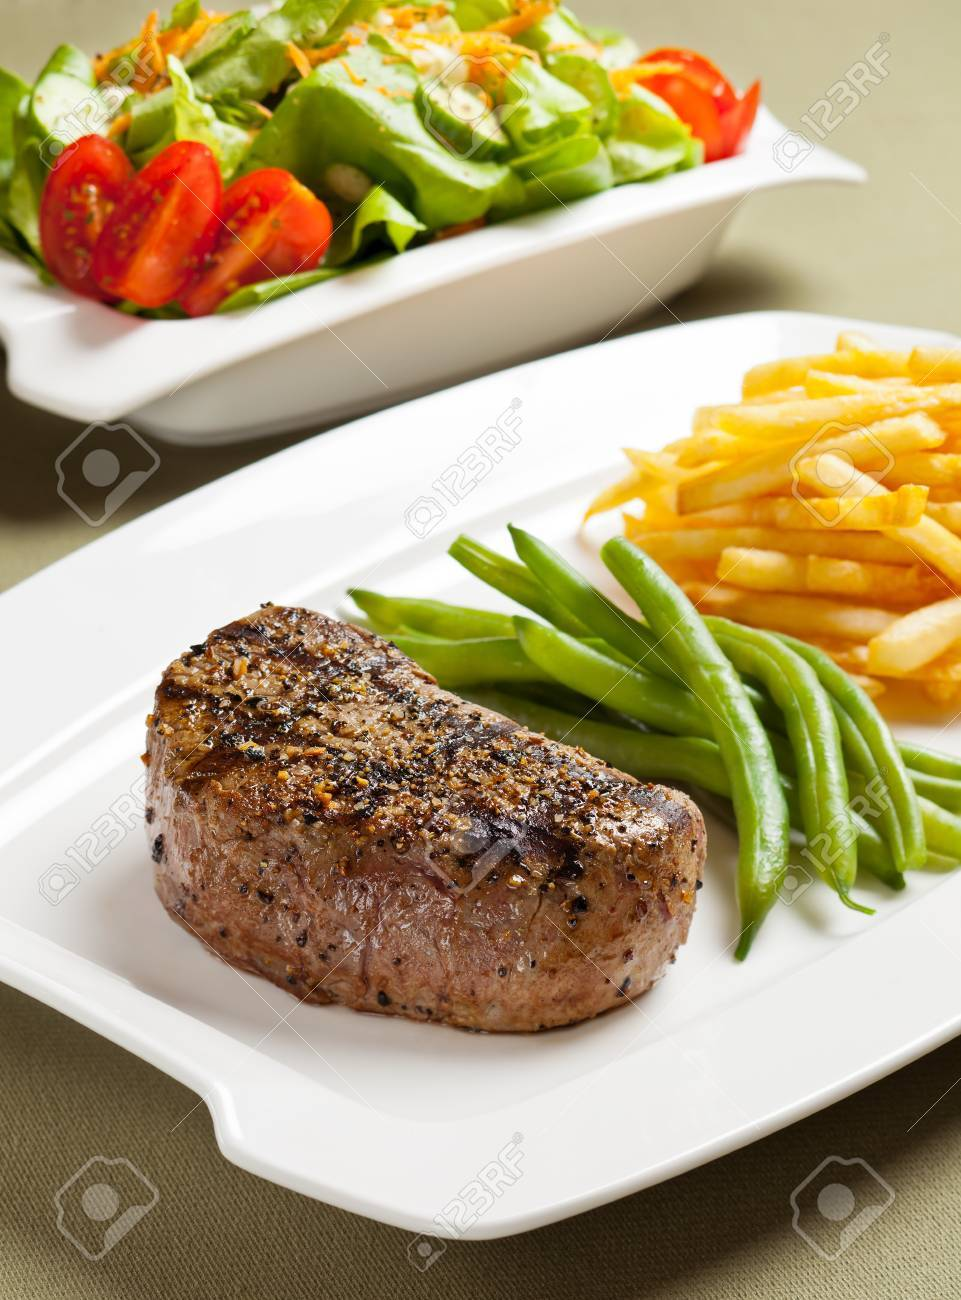 Steak with vegetable and french fries. Stock Photo - 10418977